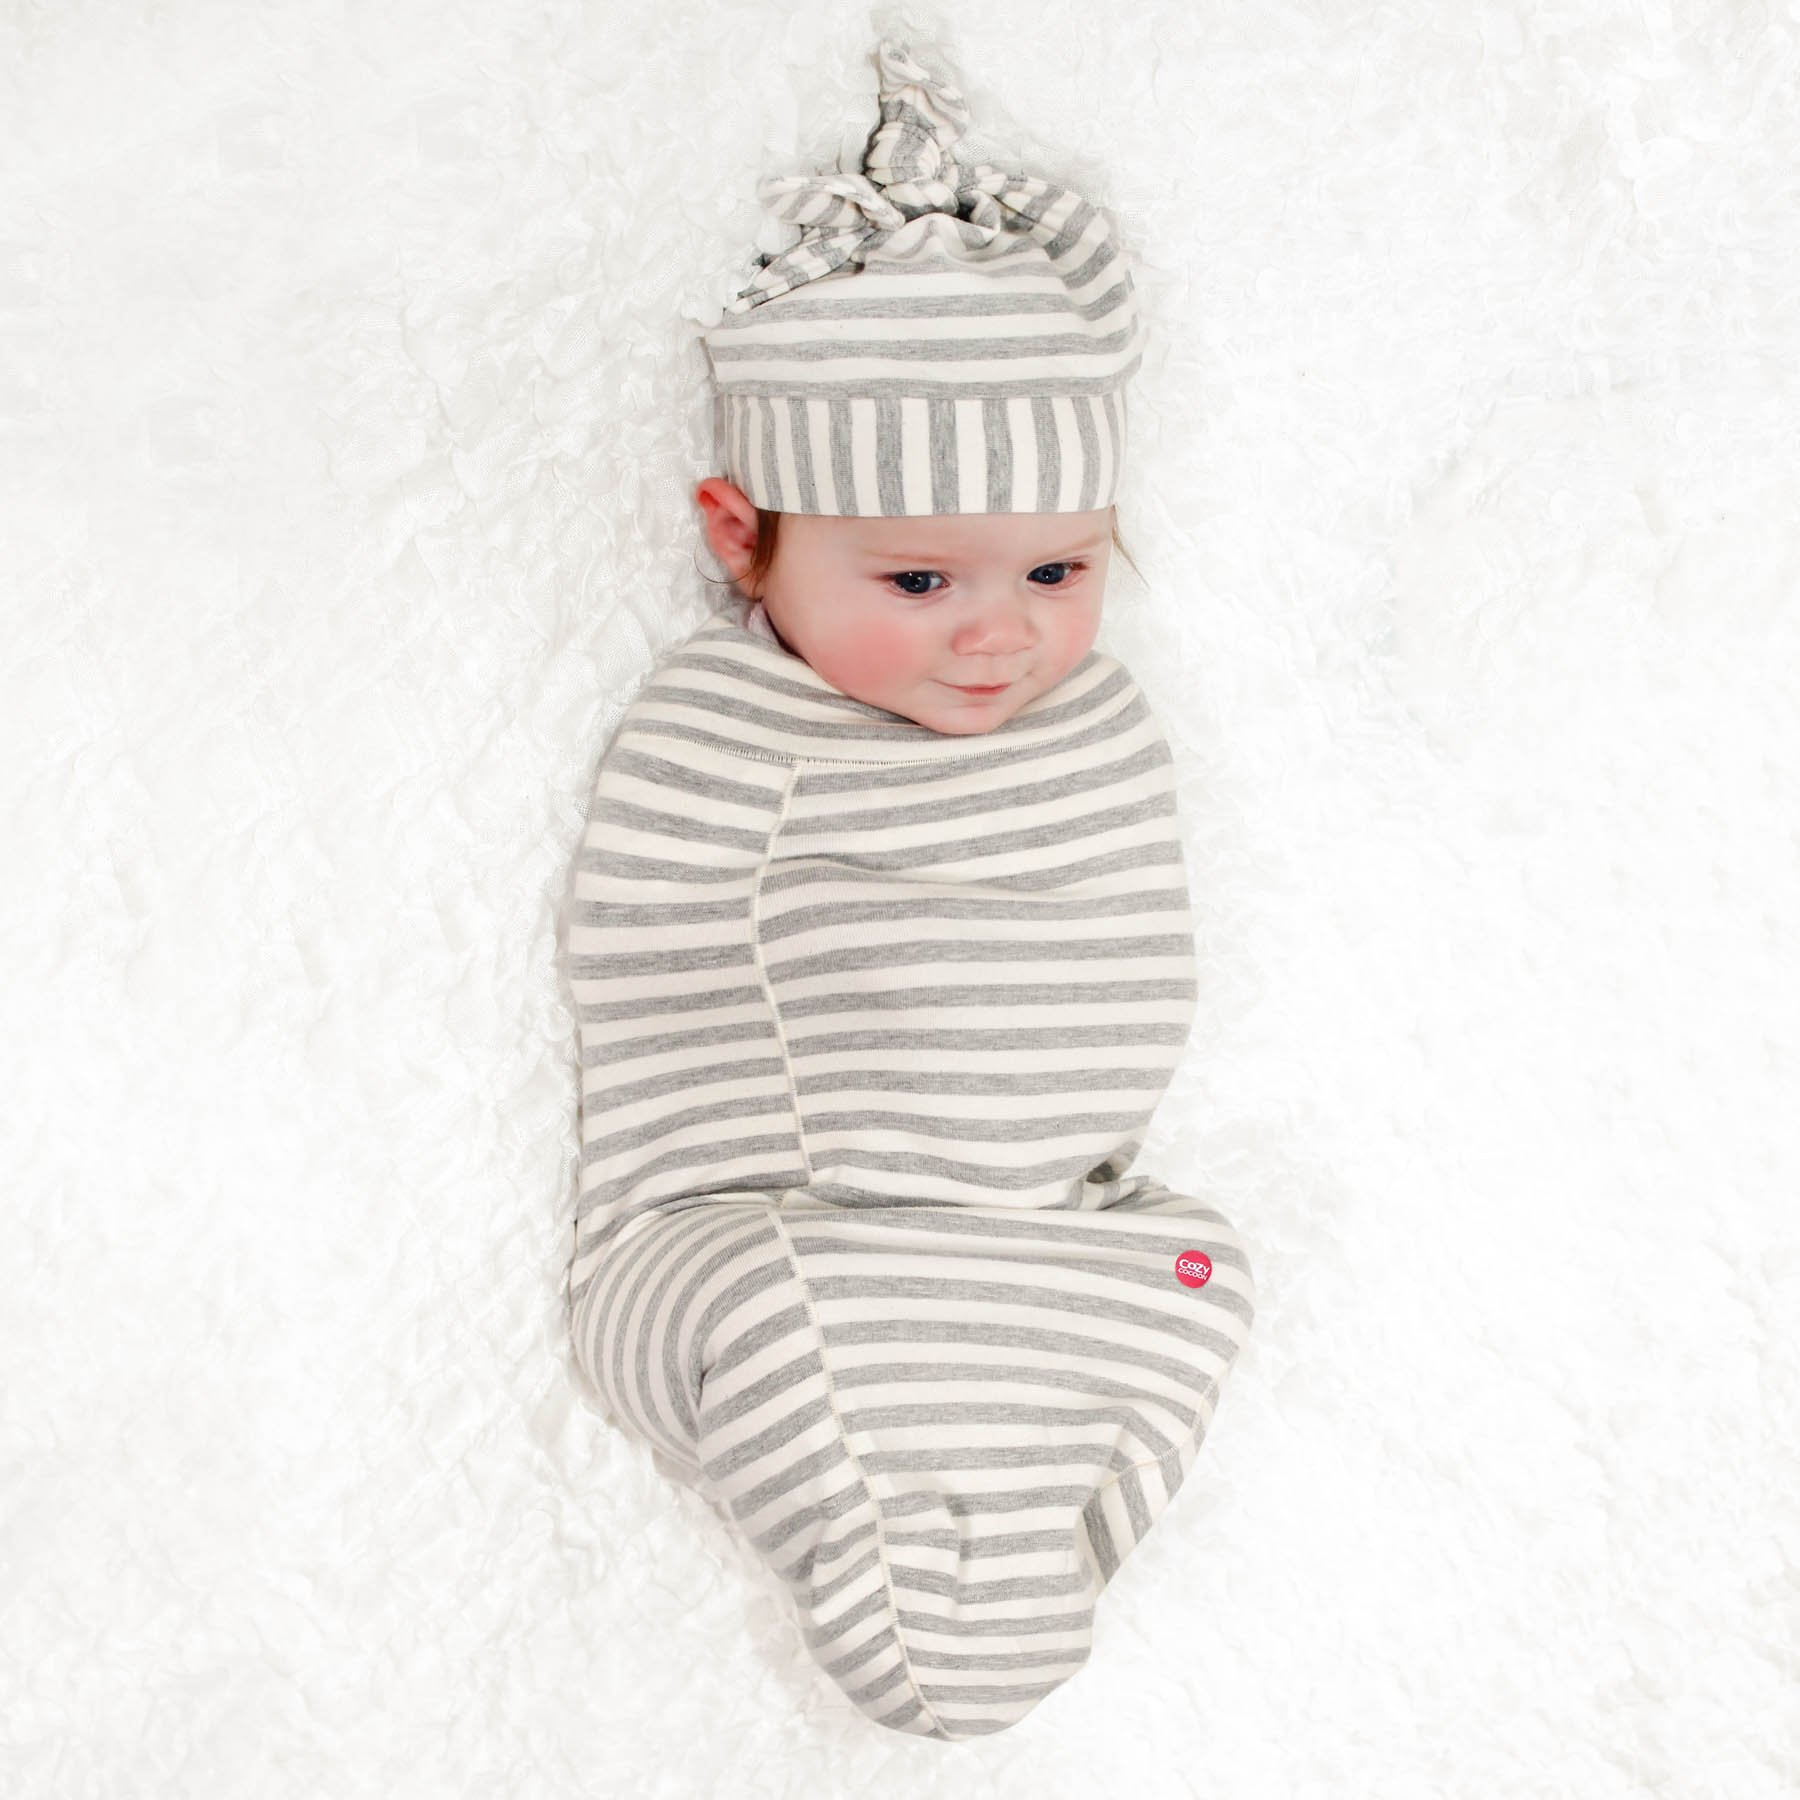 Cozy Cocoon Baby Cocoon Swaddle and Matching Hat, Gray Stripes, 0-3 months by Cozy Cocoon (Image #2)